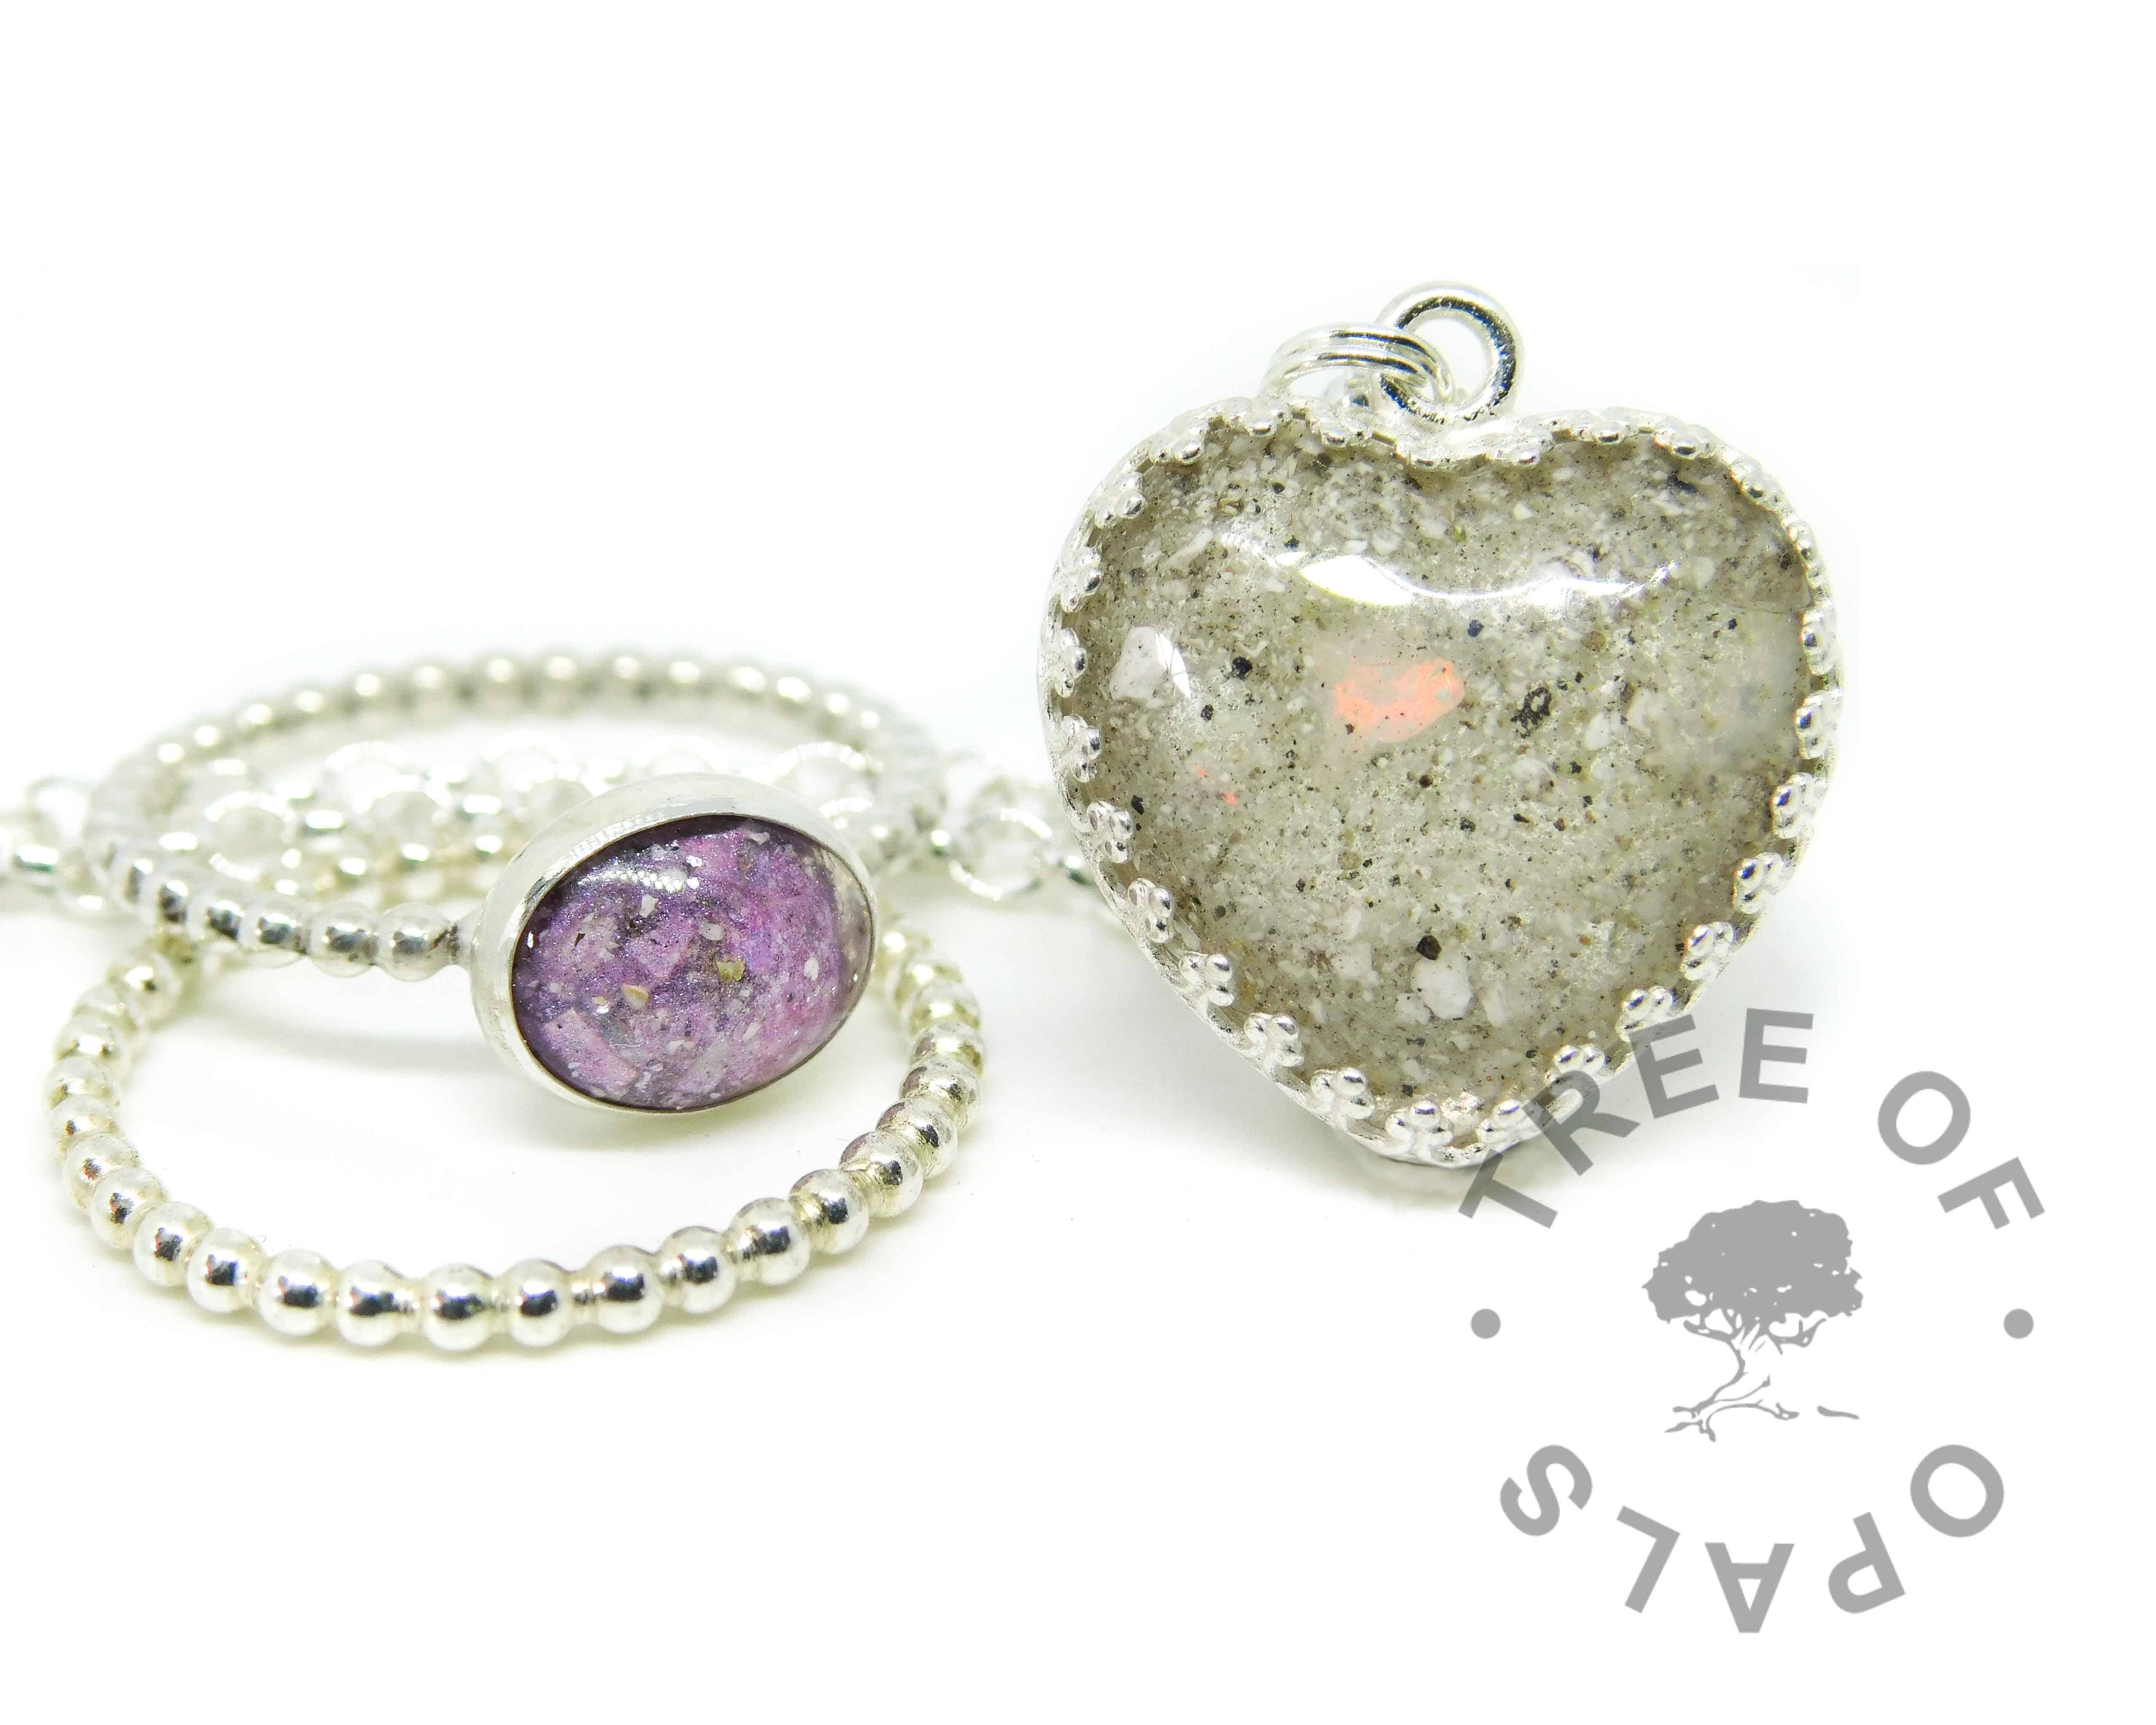 purple cremation ash ring, stacking ring and classic opal heart. Cremation ashes with orchid purple resin sparkle mix, set in a 10x8mm cabochon on a bubble wire band, with a bubble wire stacking ring. Cremation ash and clear resin with October birthstone genuine opal slices. Shown on a medium classic chain upgrade. Watermarked copyright image by Tree of Opals